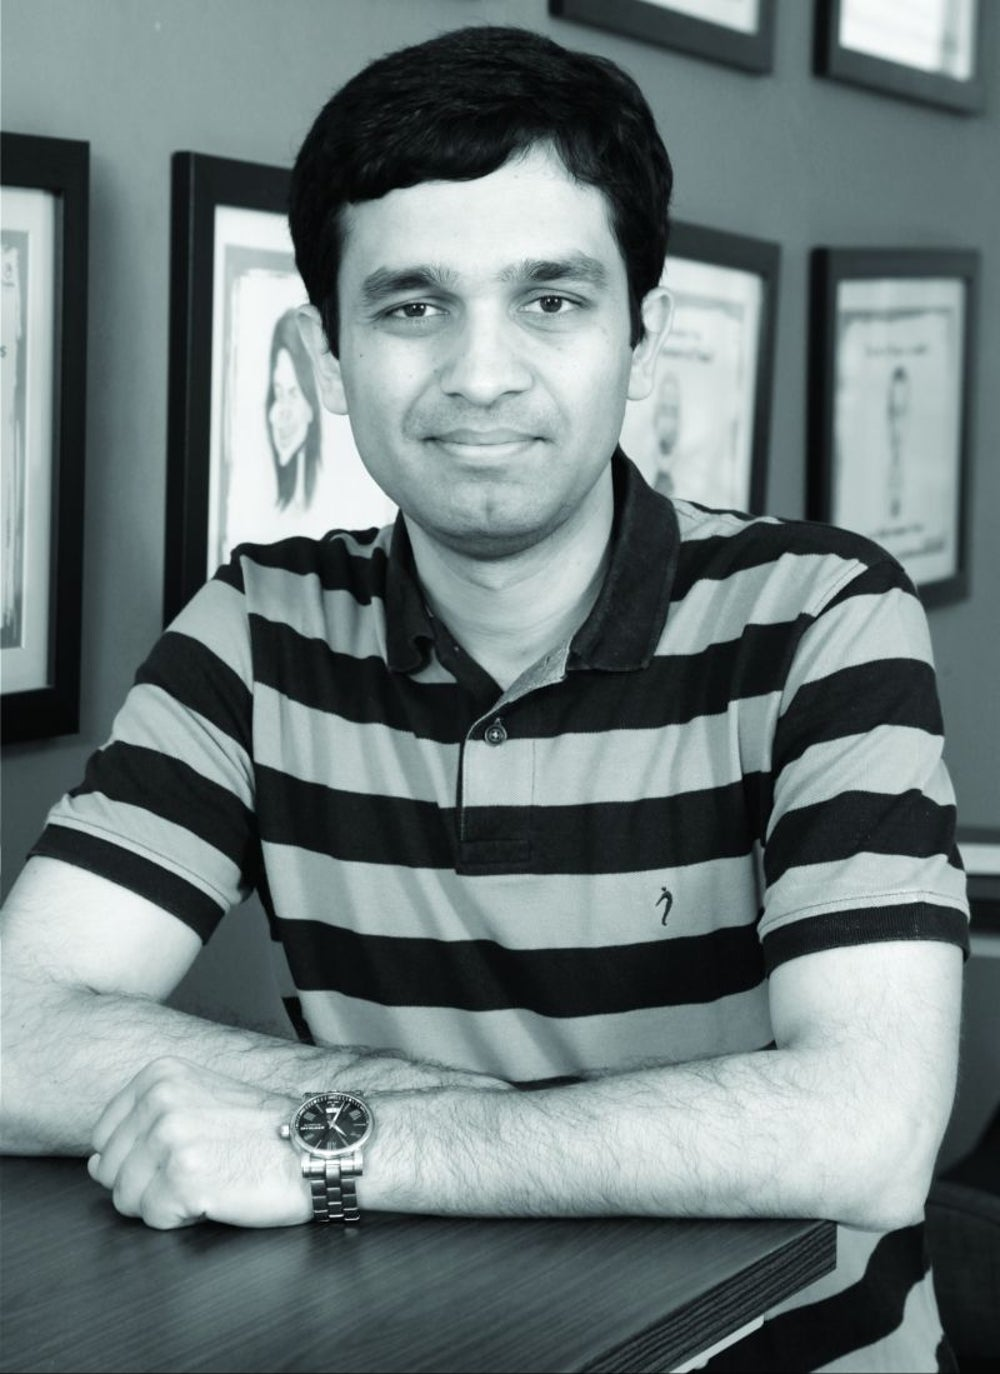 Tapping The Budget Segment - Sidharth Gupta, 32, Founder, Treebo Hotels